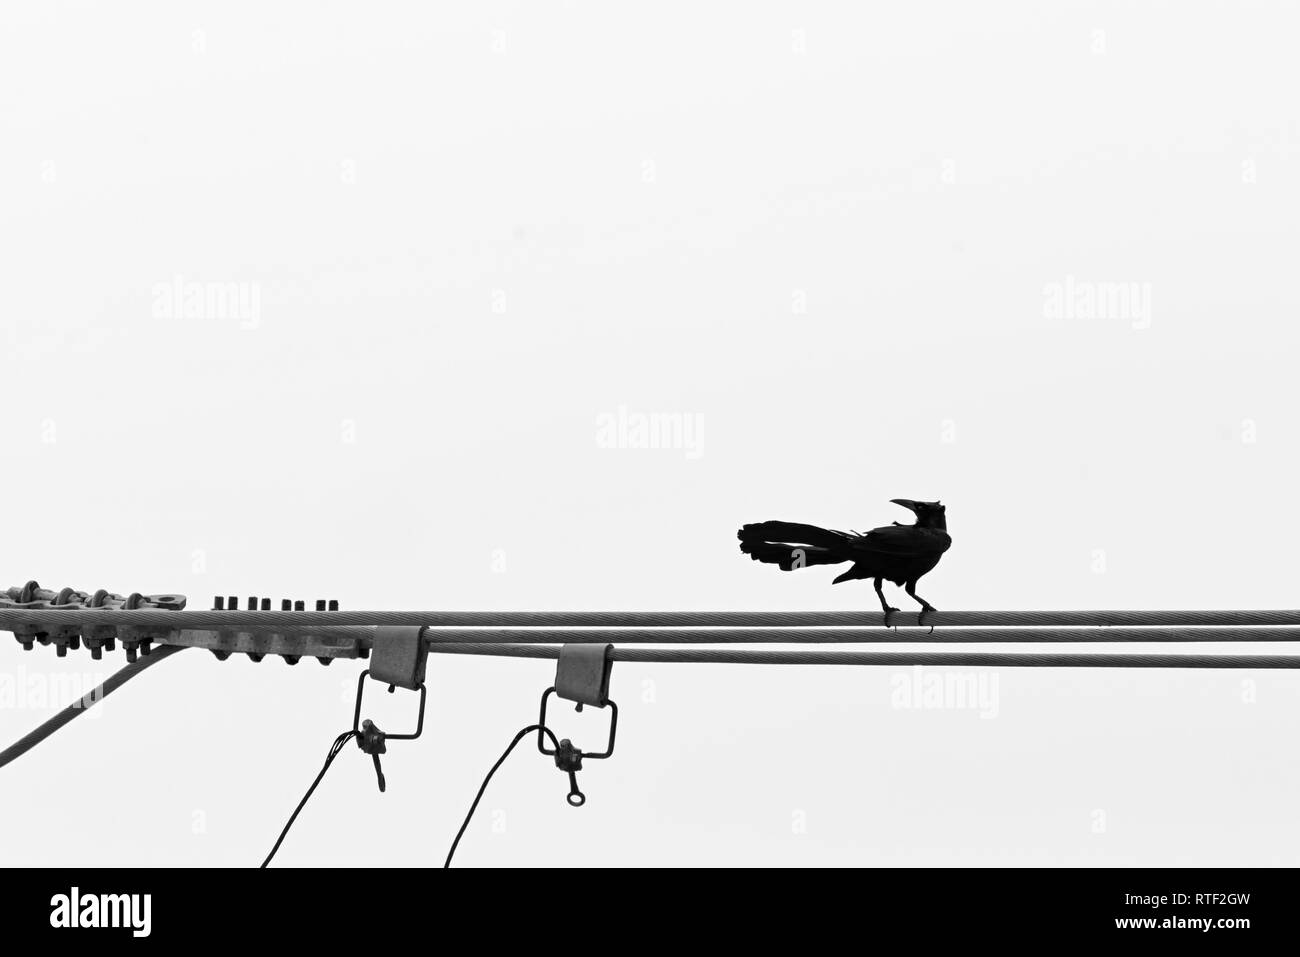 hight resolution of carib grackle quiscalus lugubris perching on the electrical wire stock image